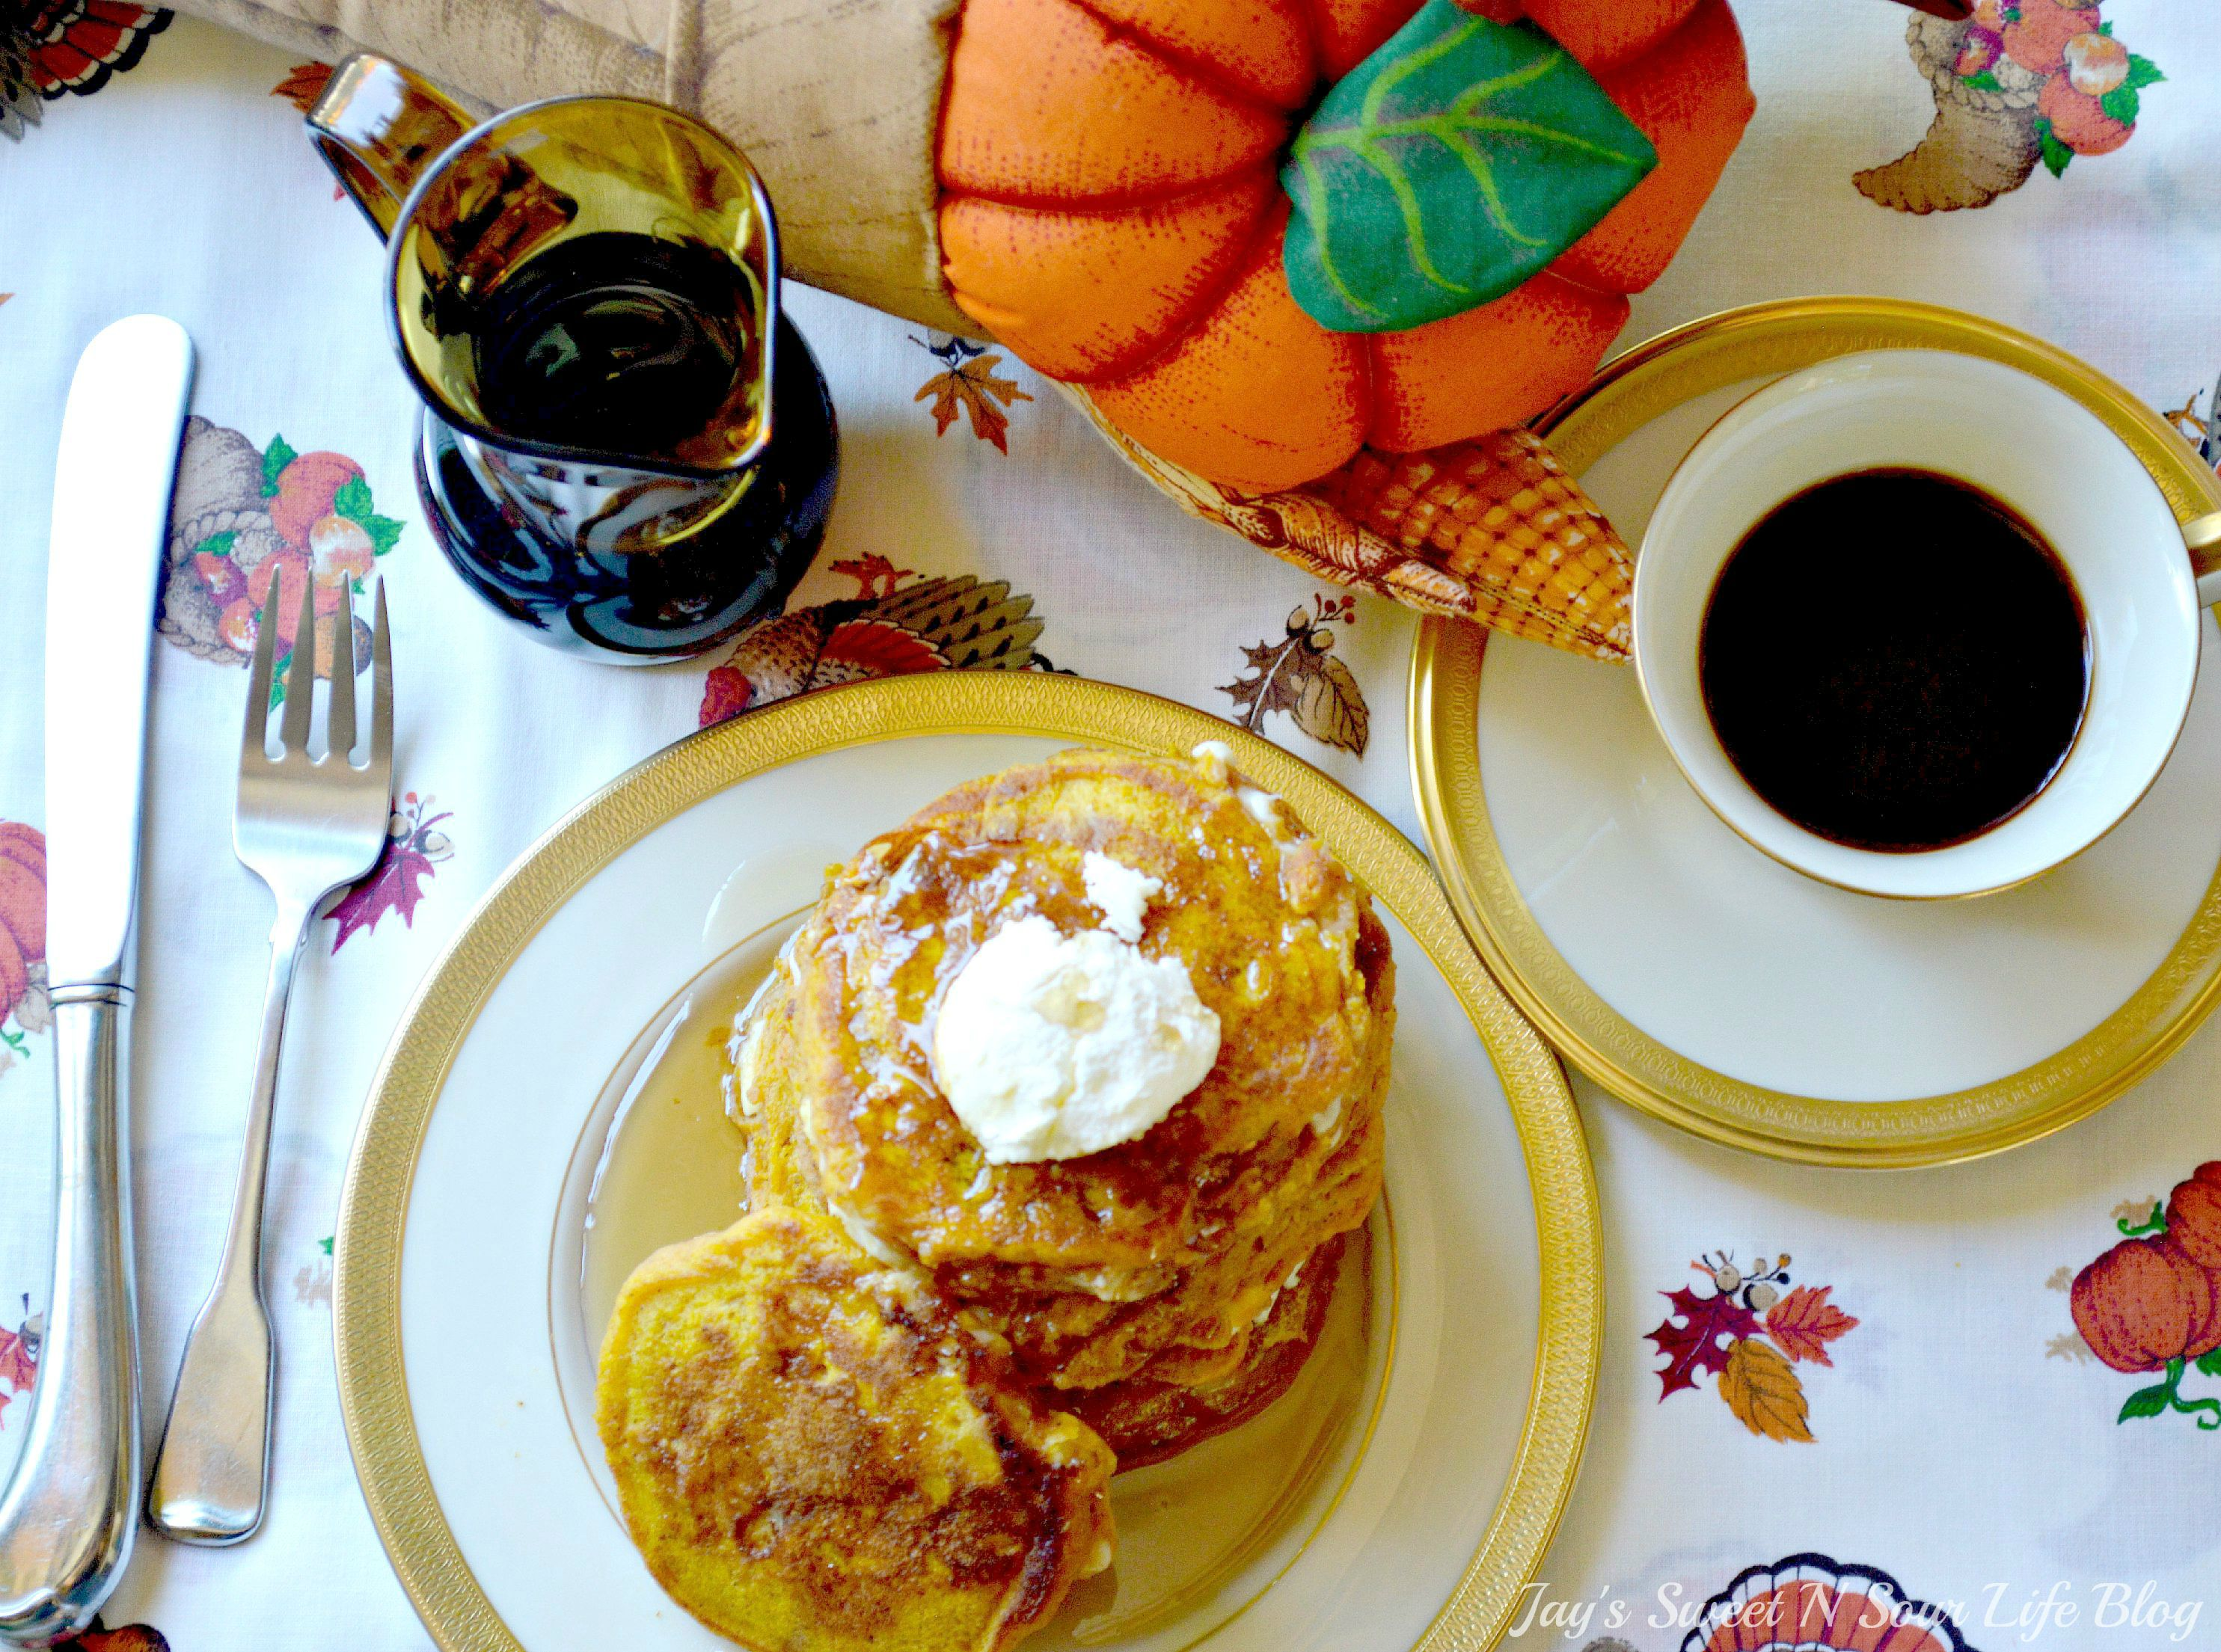 . Chocolate Chip Pumpkin Buttermlik PancakesNothing says fall like my Pumpkin Chocolate Chip Buttermilk Pancakes. These from-scratch pumpkin pancakes are made with real pumpkins and buttermilk making them super moist and fluffy, they are perfect for fall mornings.